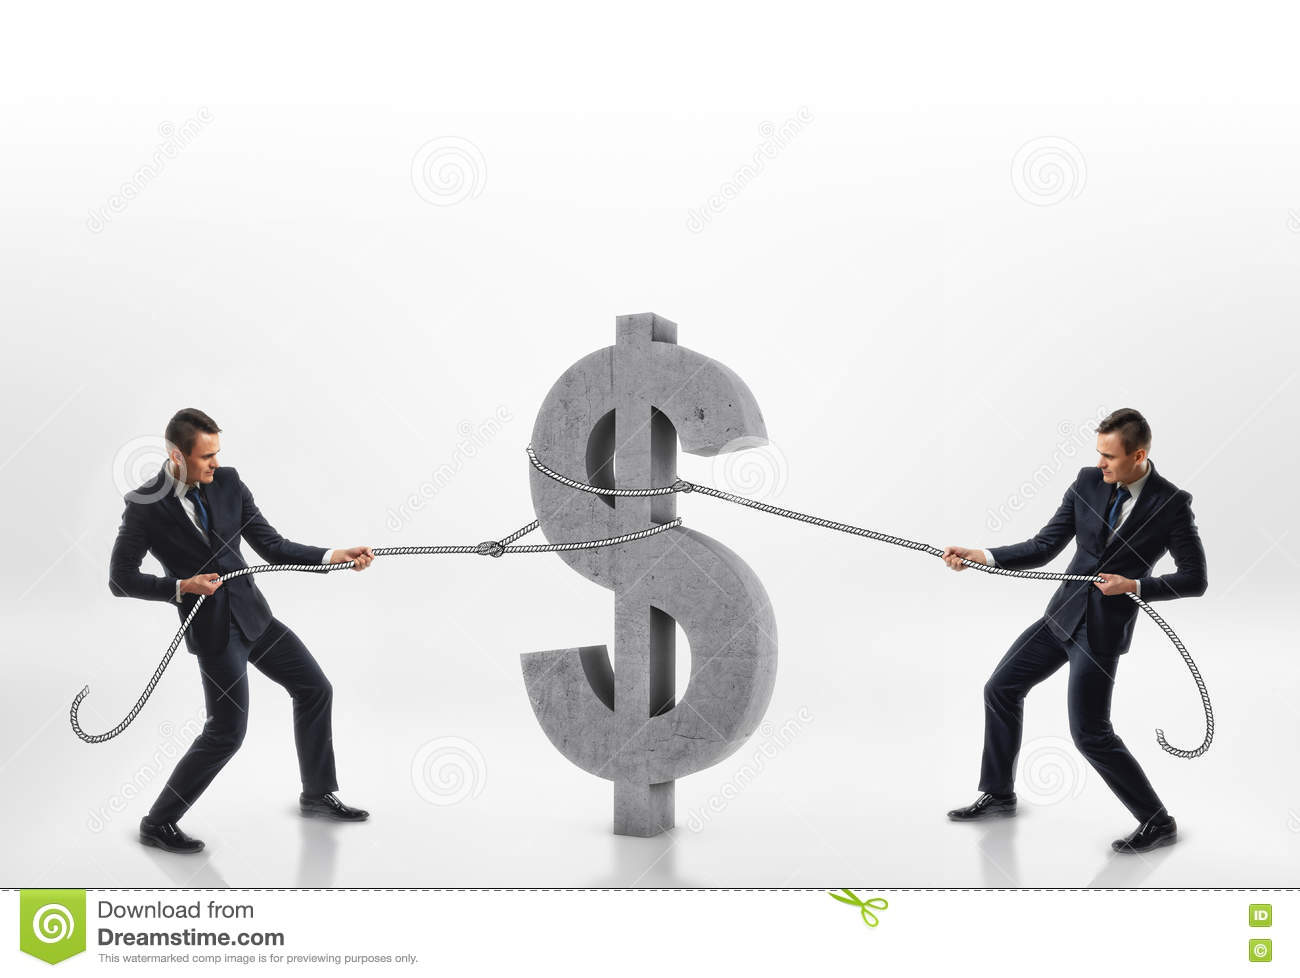 Two businessmen pulling big concrete 3d dollar sign with ropes in opposite directions isolated on white background